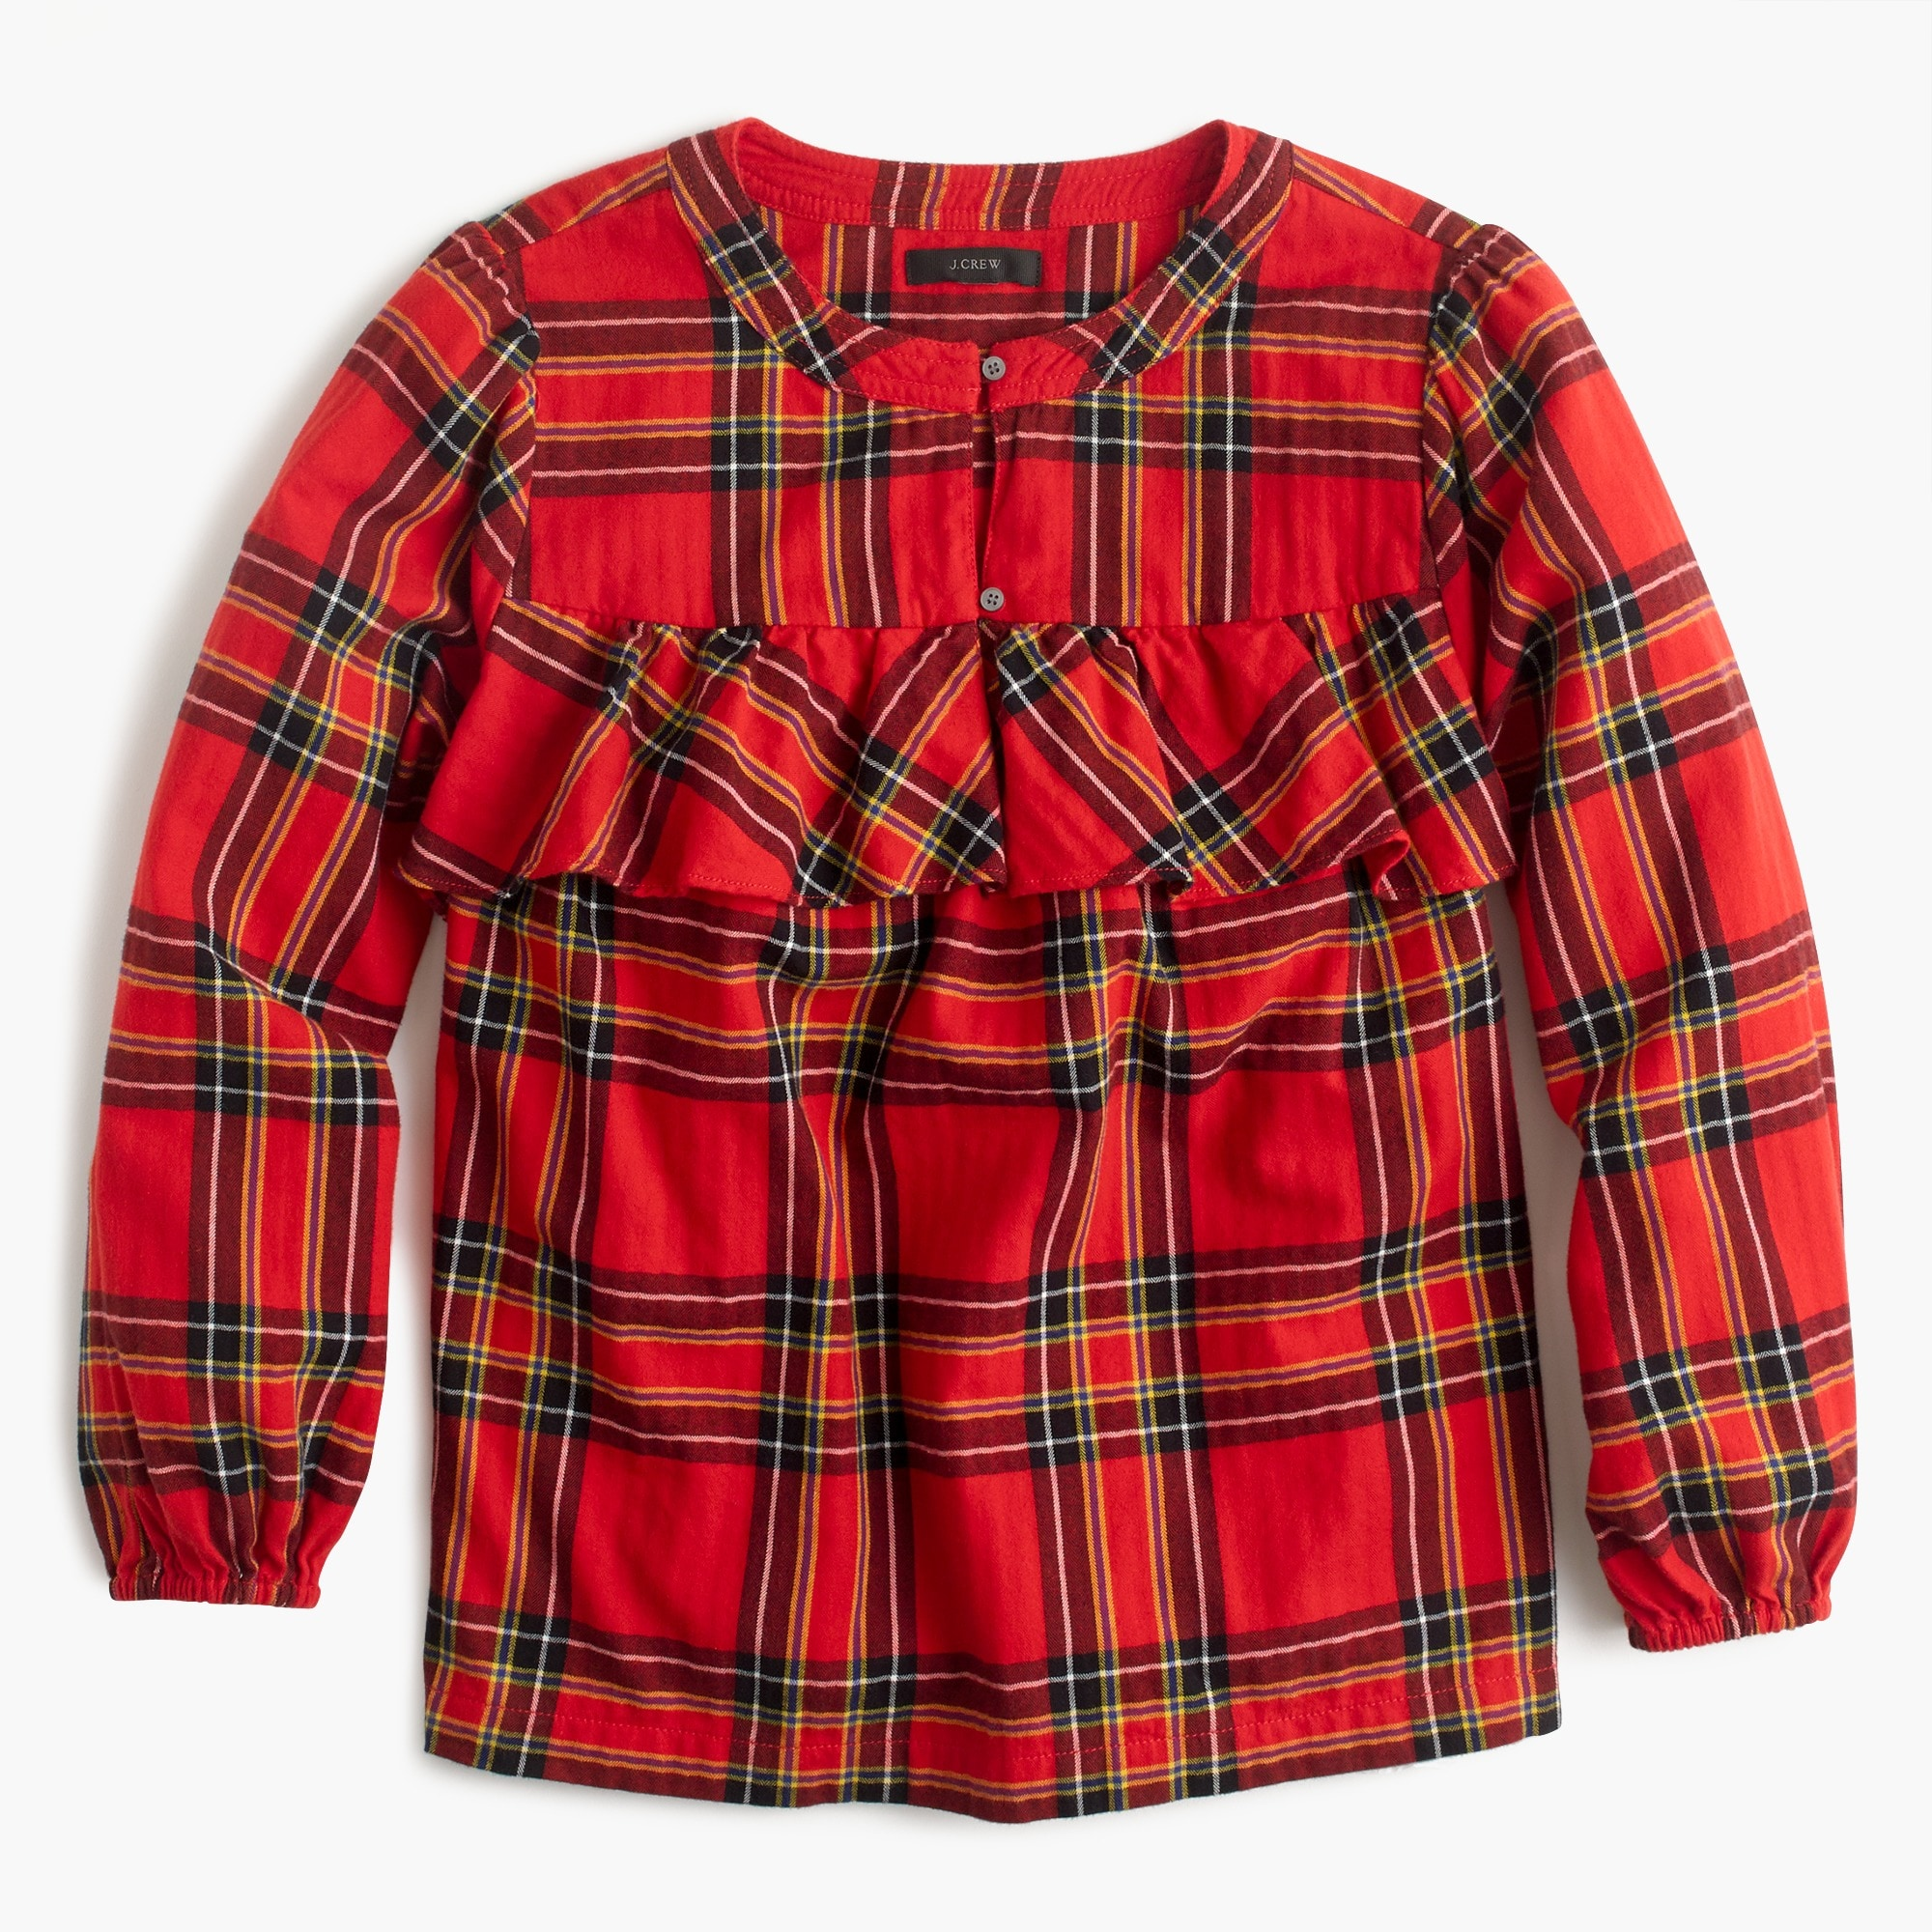 Image 6 for Ruffle top in festive plaid